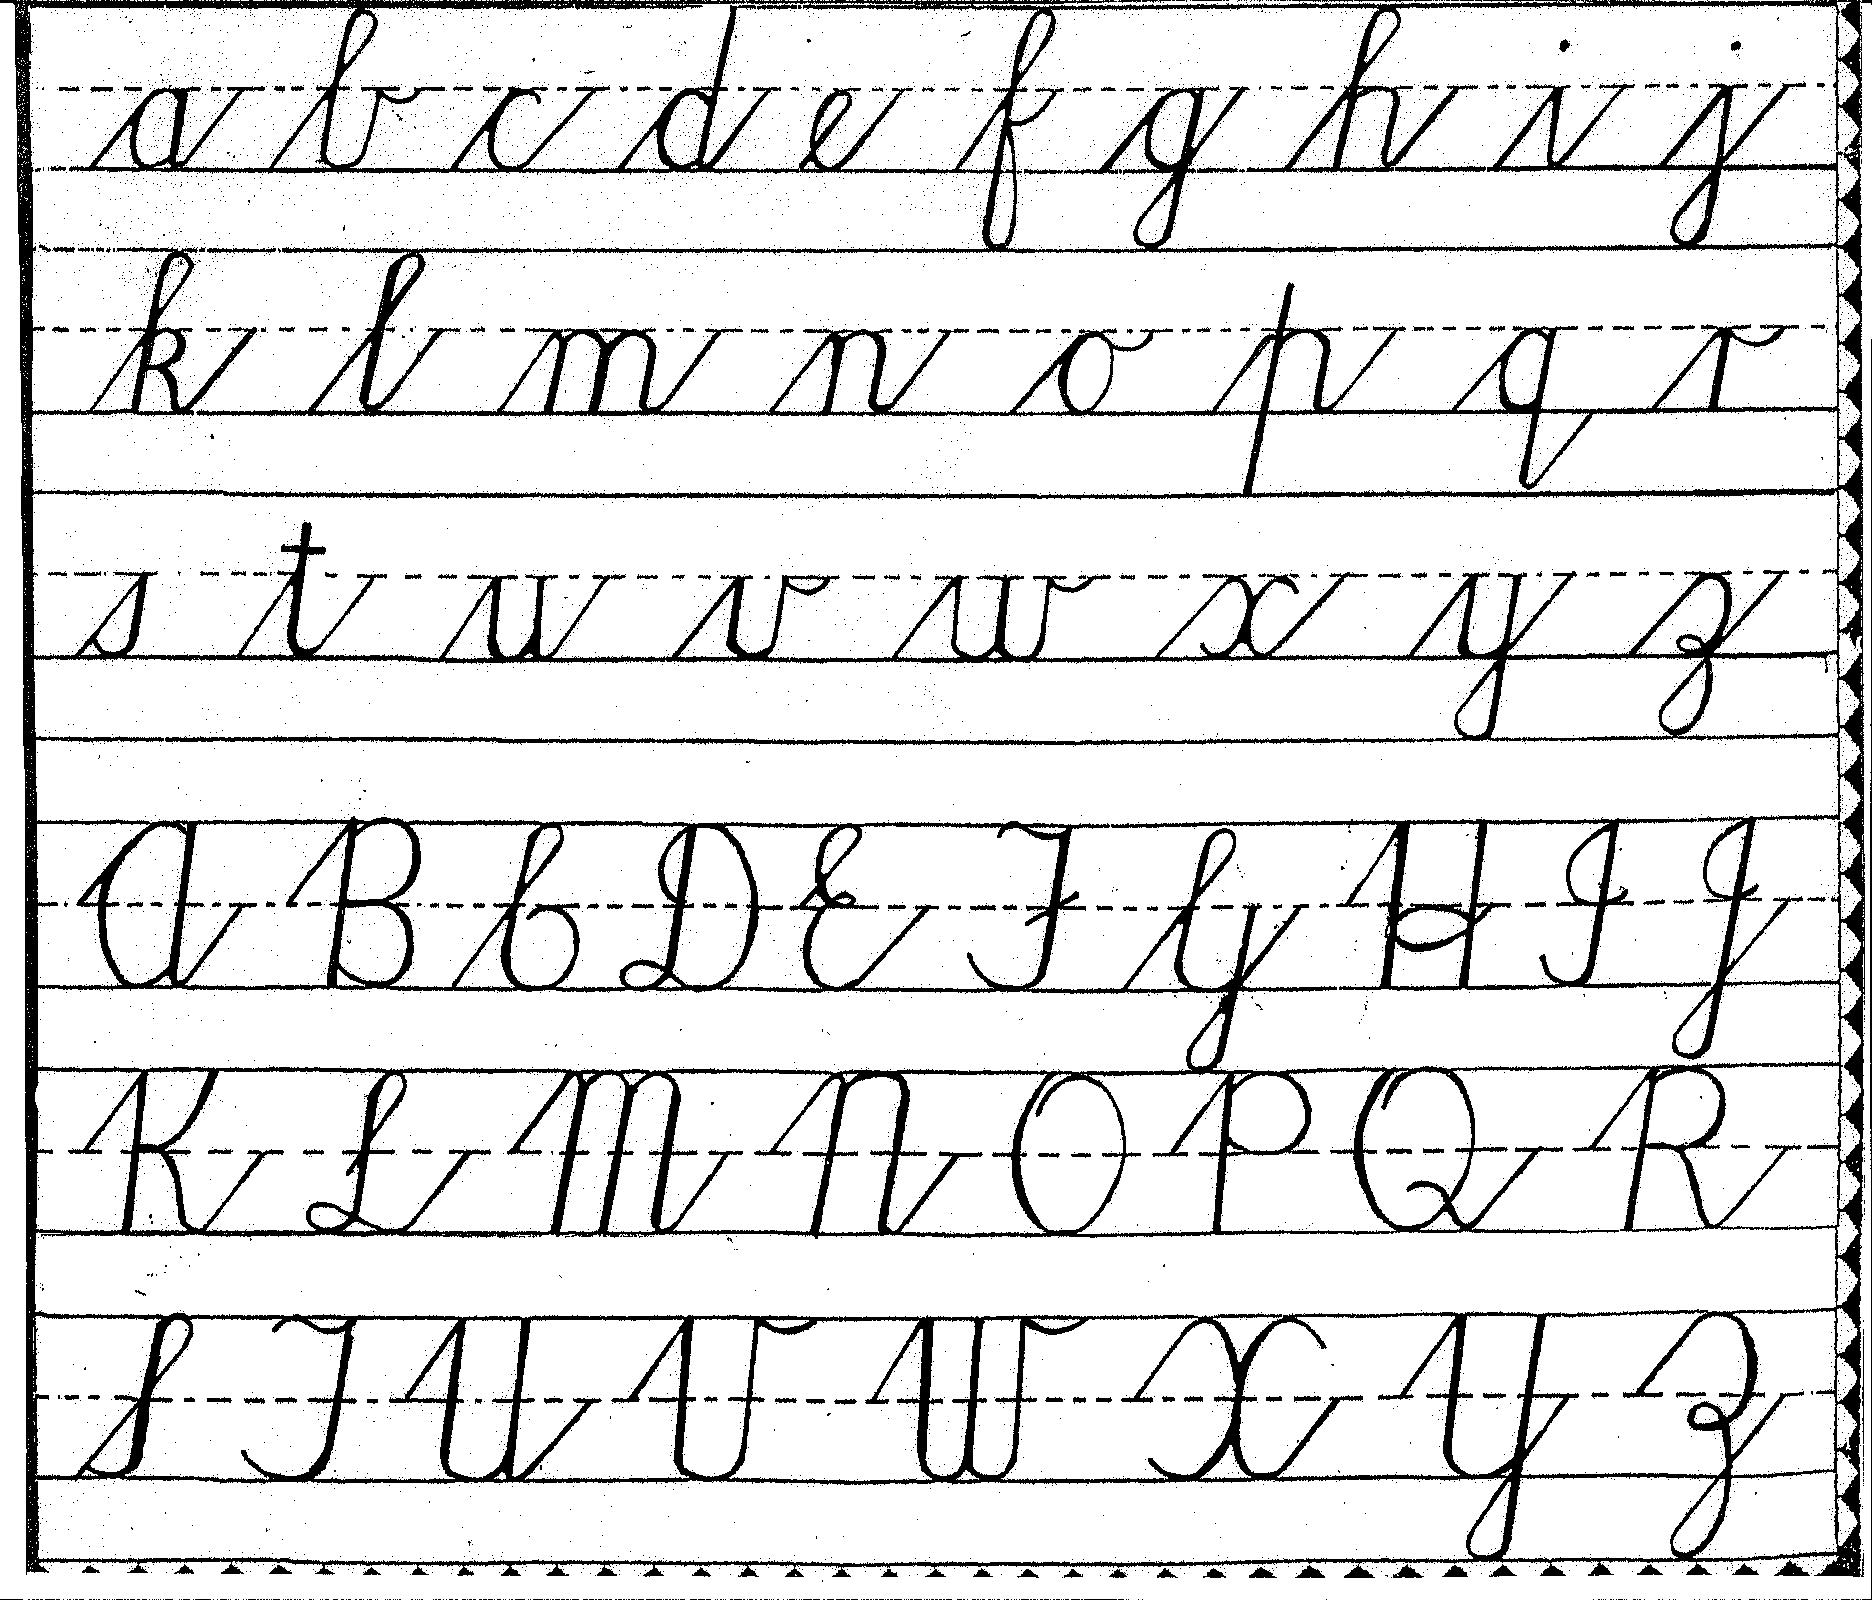 free printable cursive writing sheets Help your child with handwriting when you provide free handwriting worksheets to practice manuscript and cursive script.